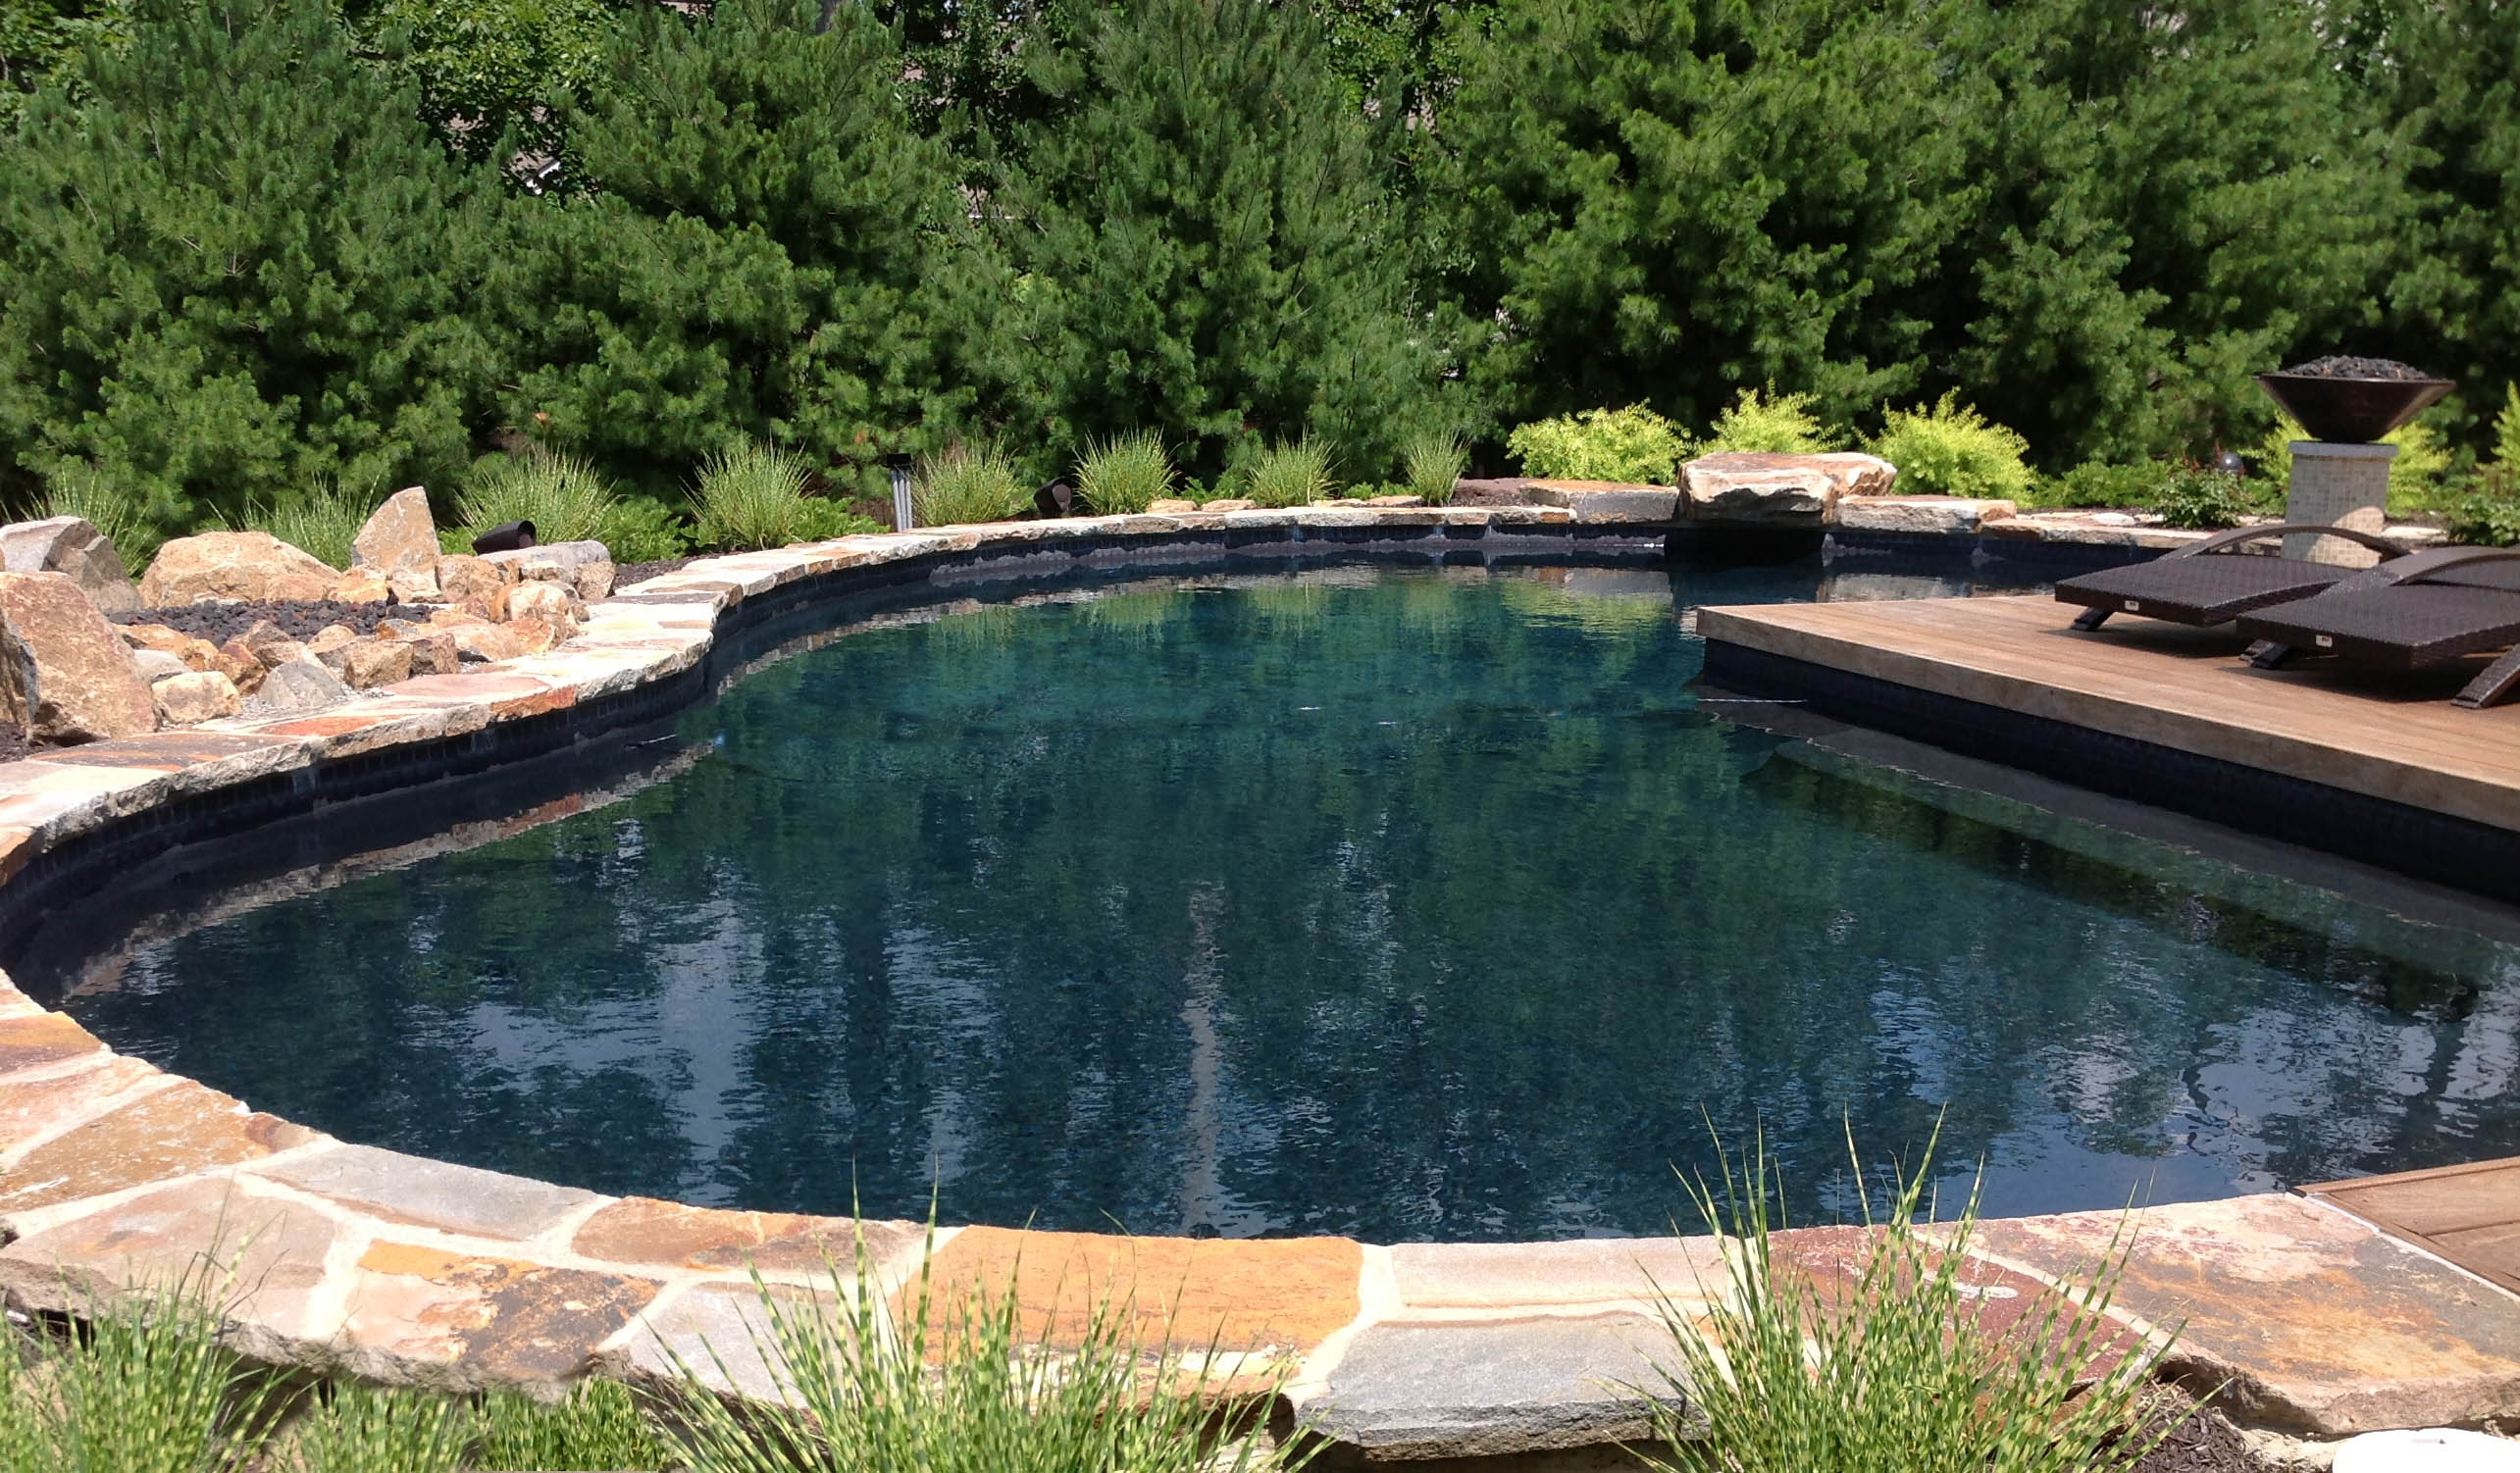 swimming pool Archives - Garden Design Inc.